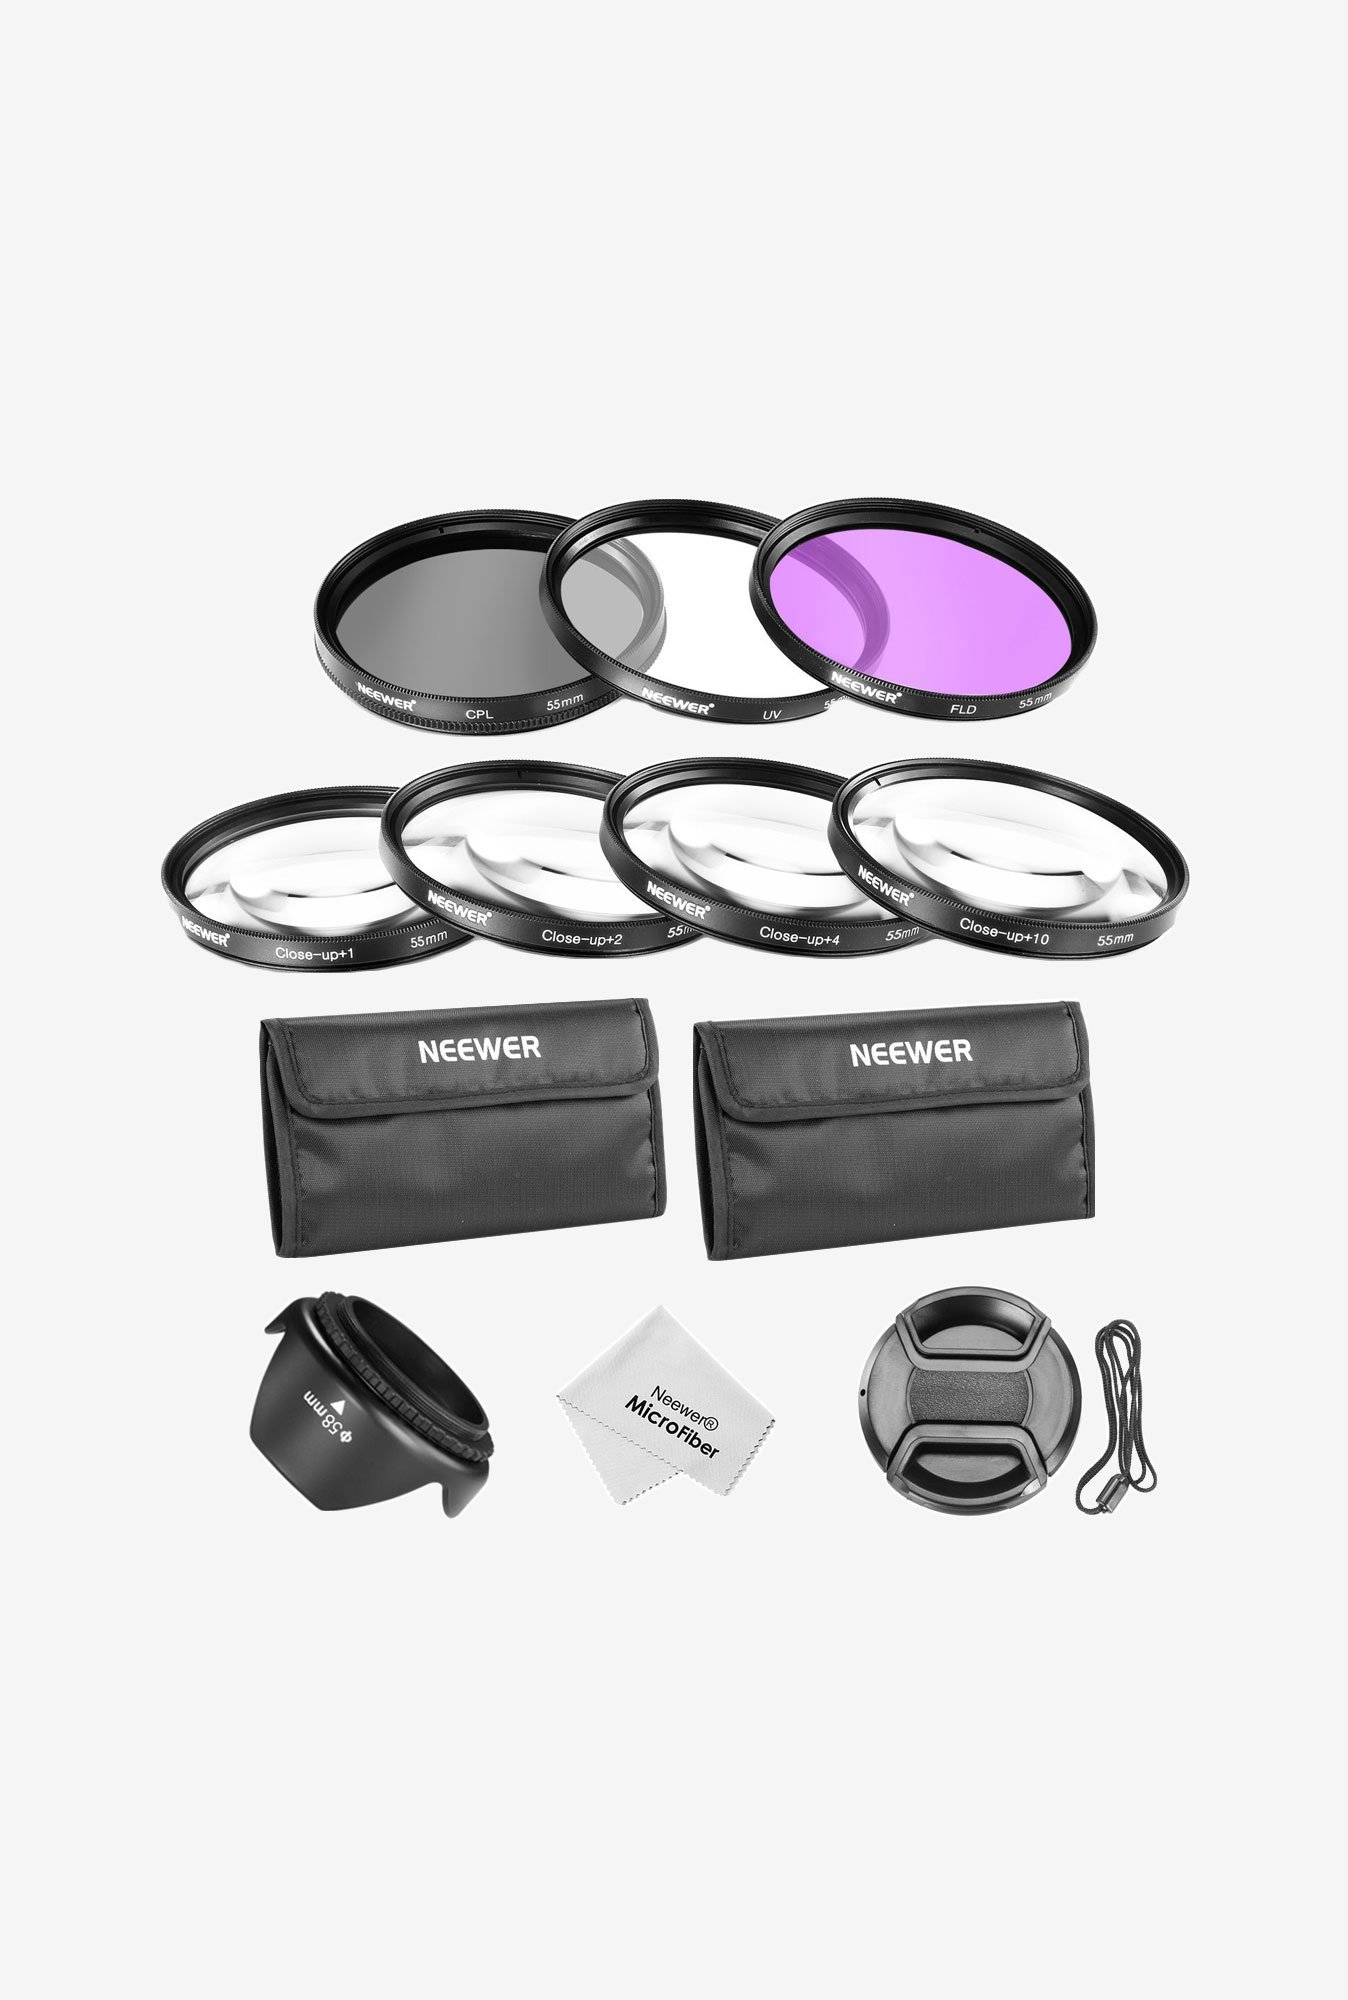 Neewer 55Mm Lens Filter and Close-Up Macro Accessory Kit